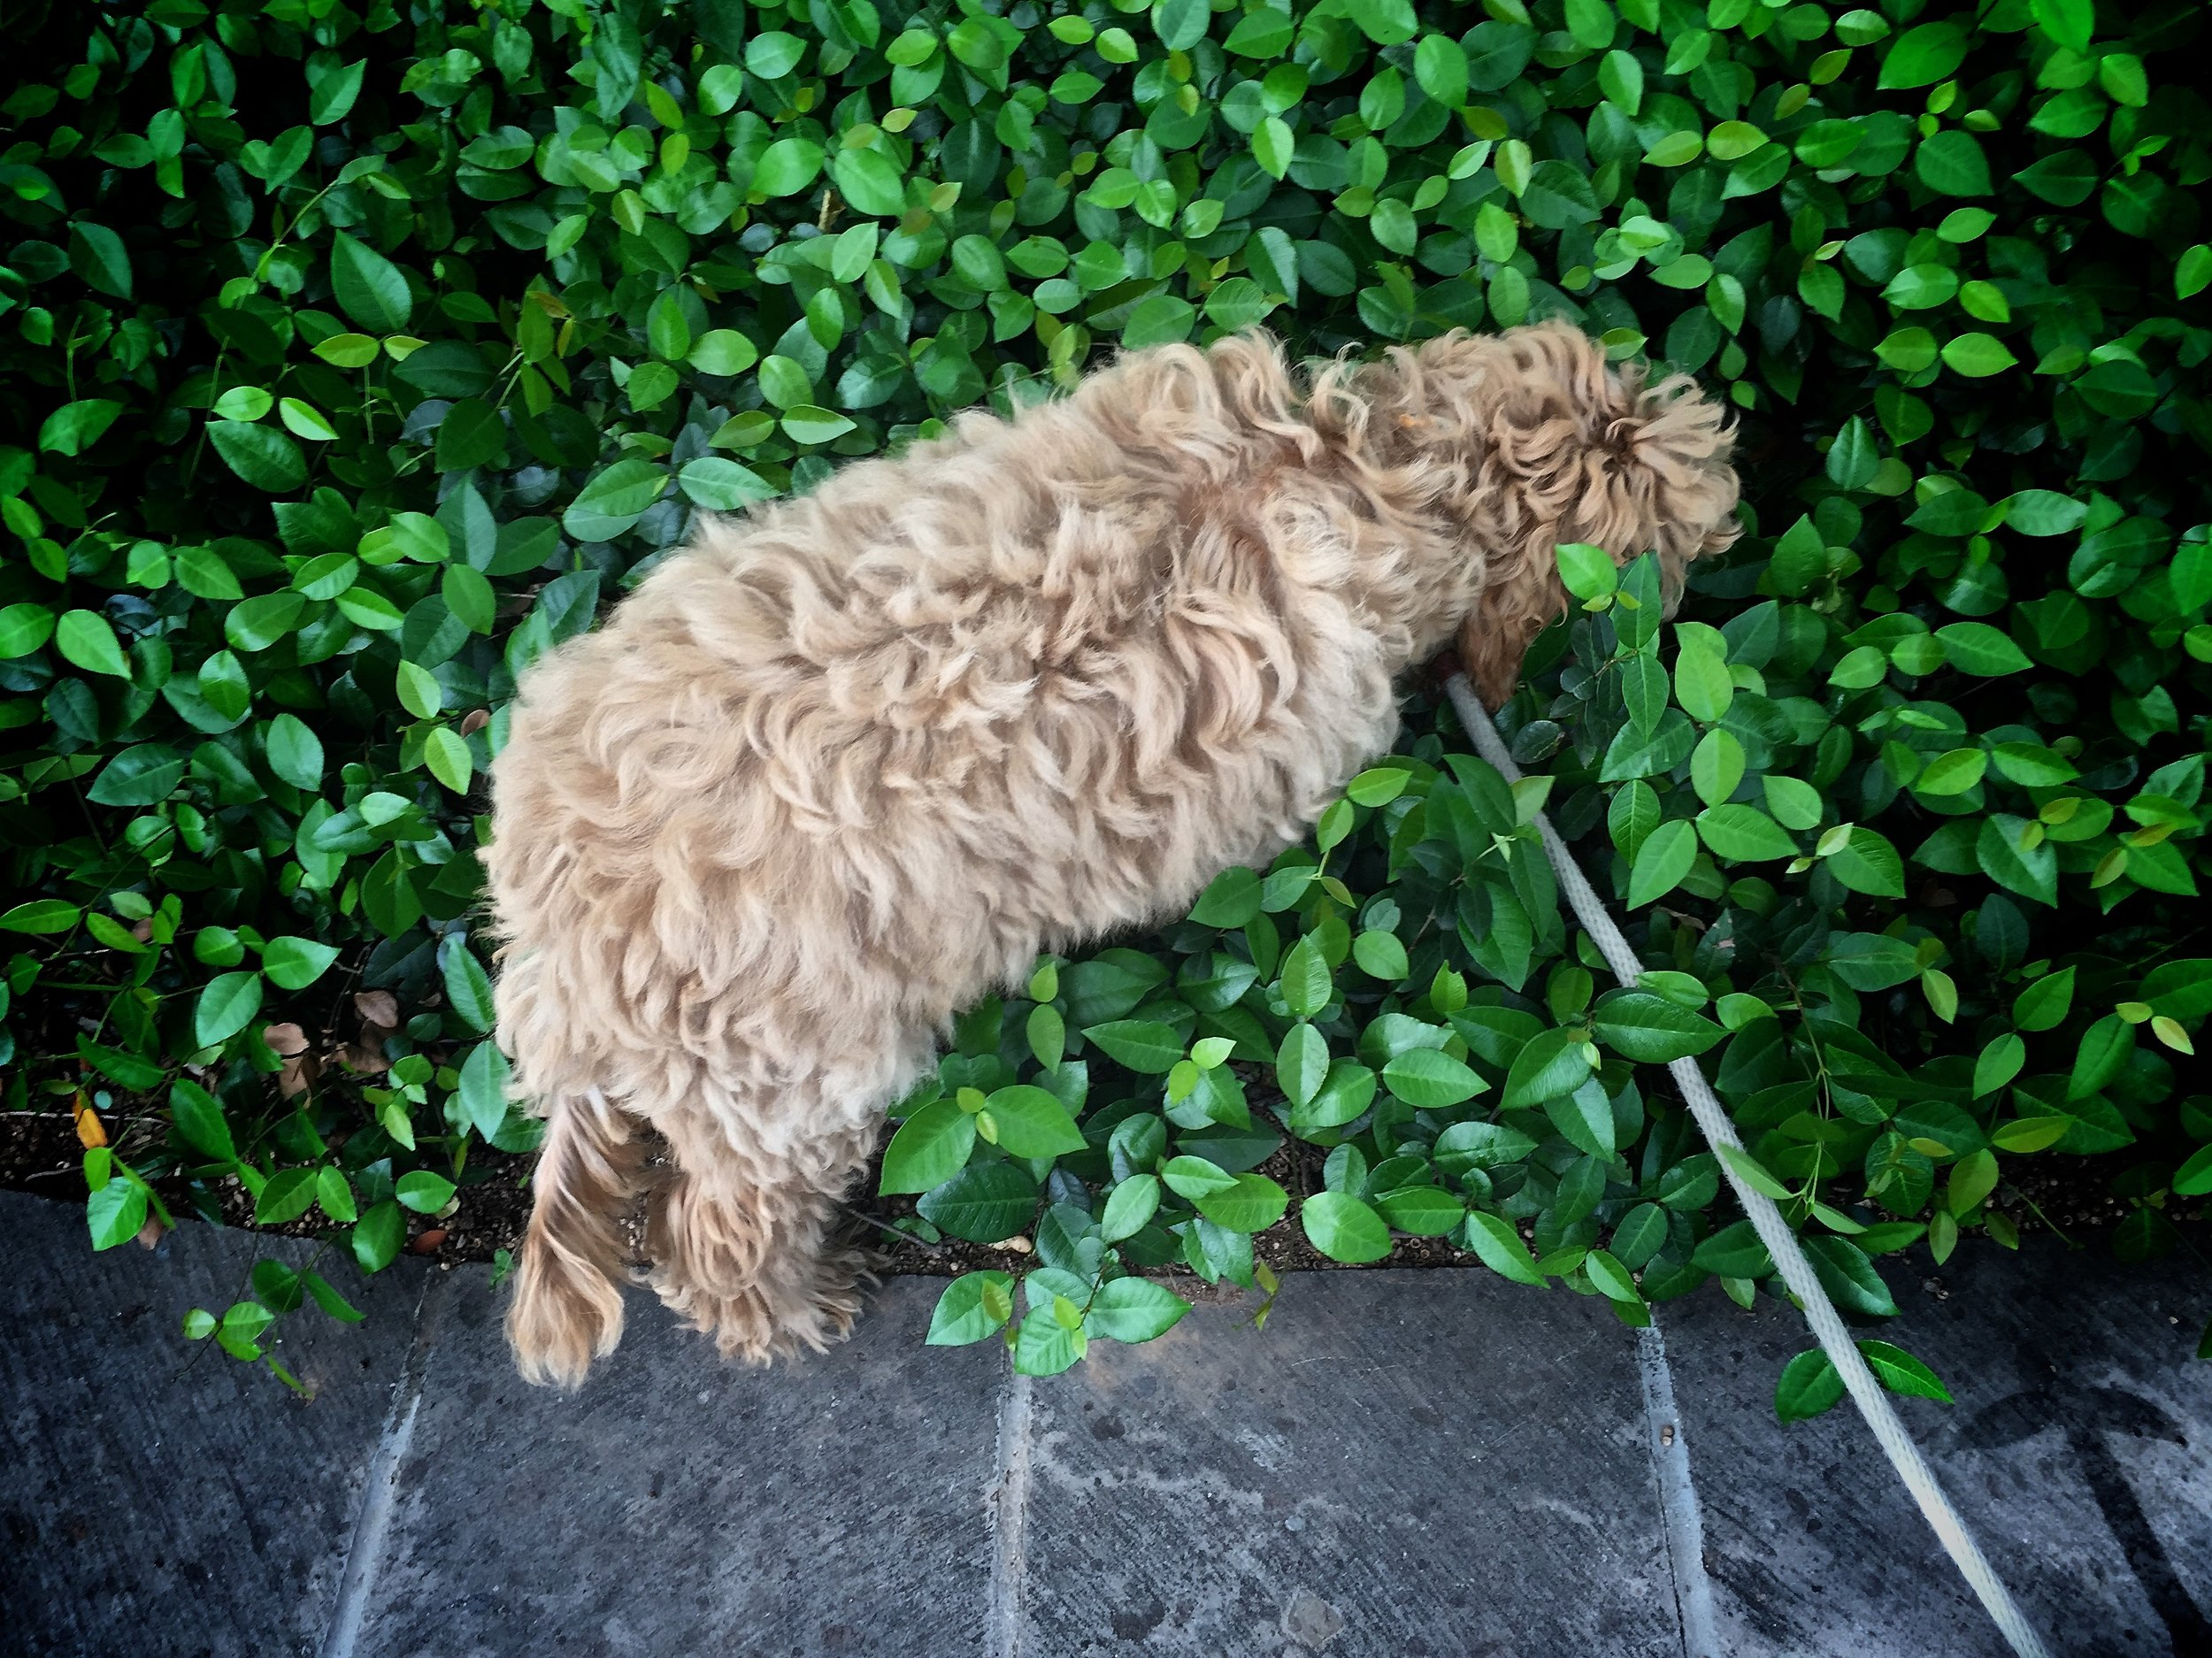 Lizzie! You need to stay on the pathways. Not charge headfirst into the ground cover. No matter how good the sniffs.